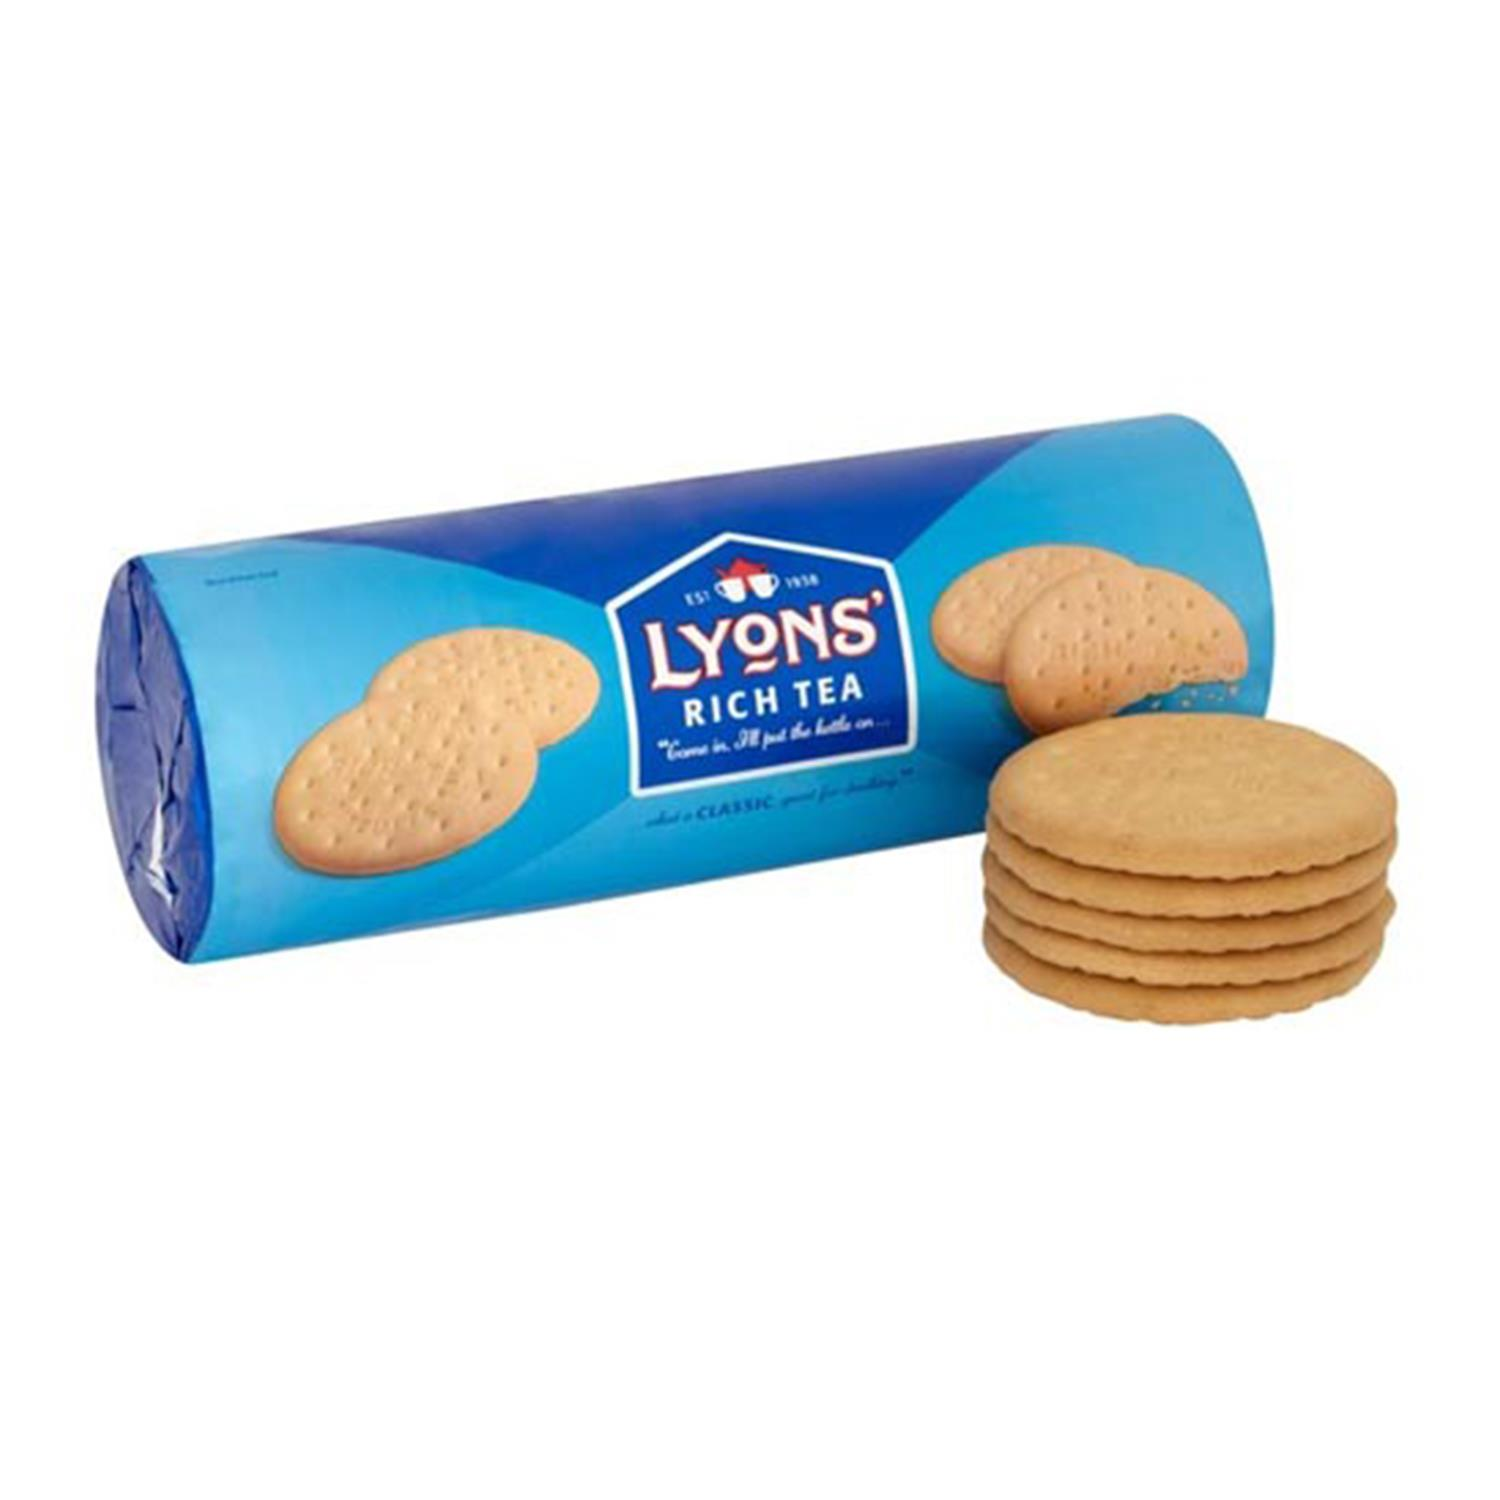 thumbnail 8 - Lyons Rich Tea Biscuits 300g, Great for a morning or afternoon snack